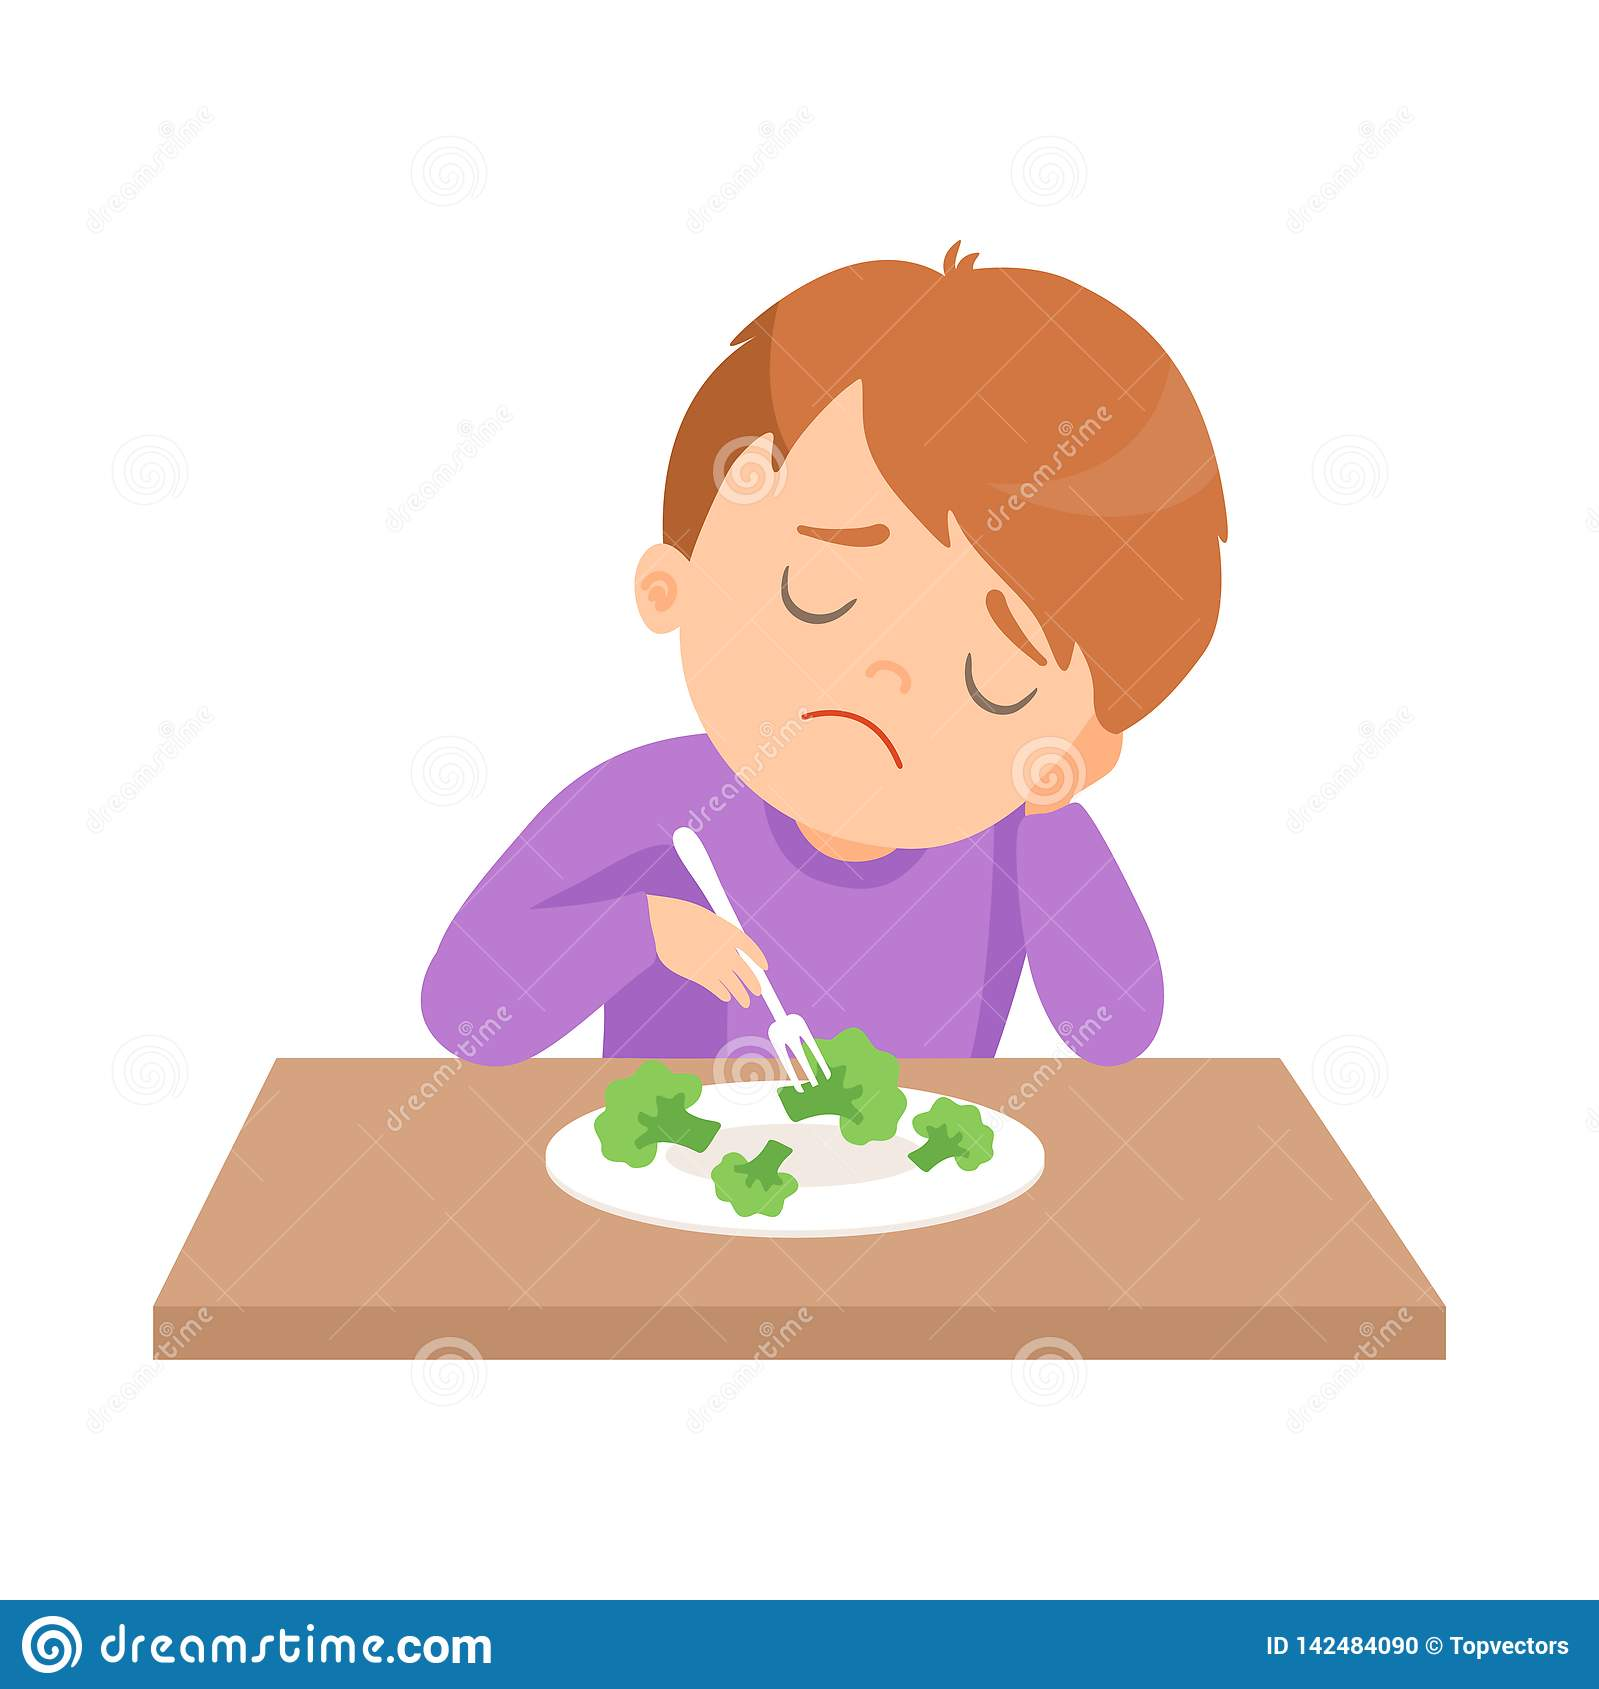 Cute Boy Does Not Want To Eat Broccoli Kid Does Not Like